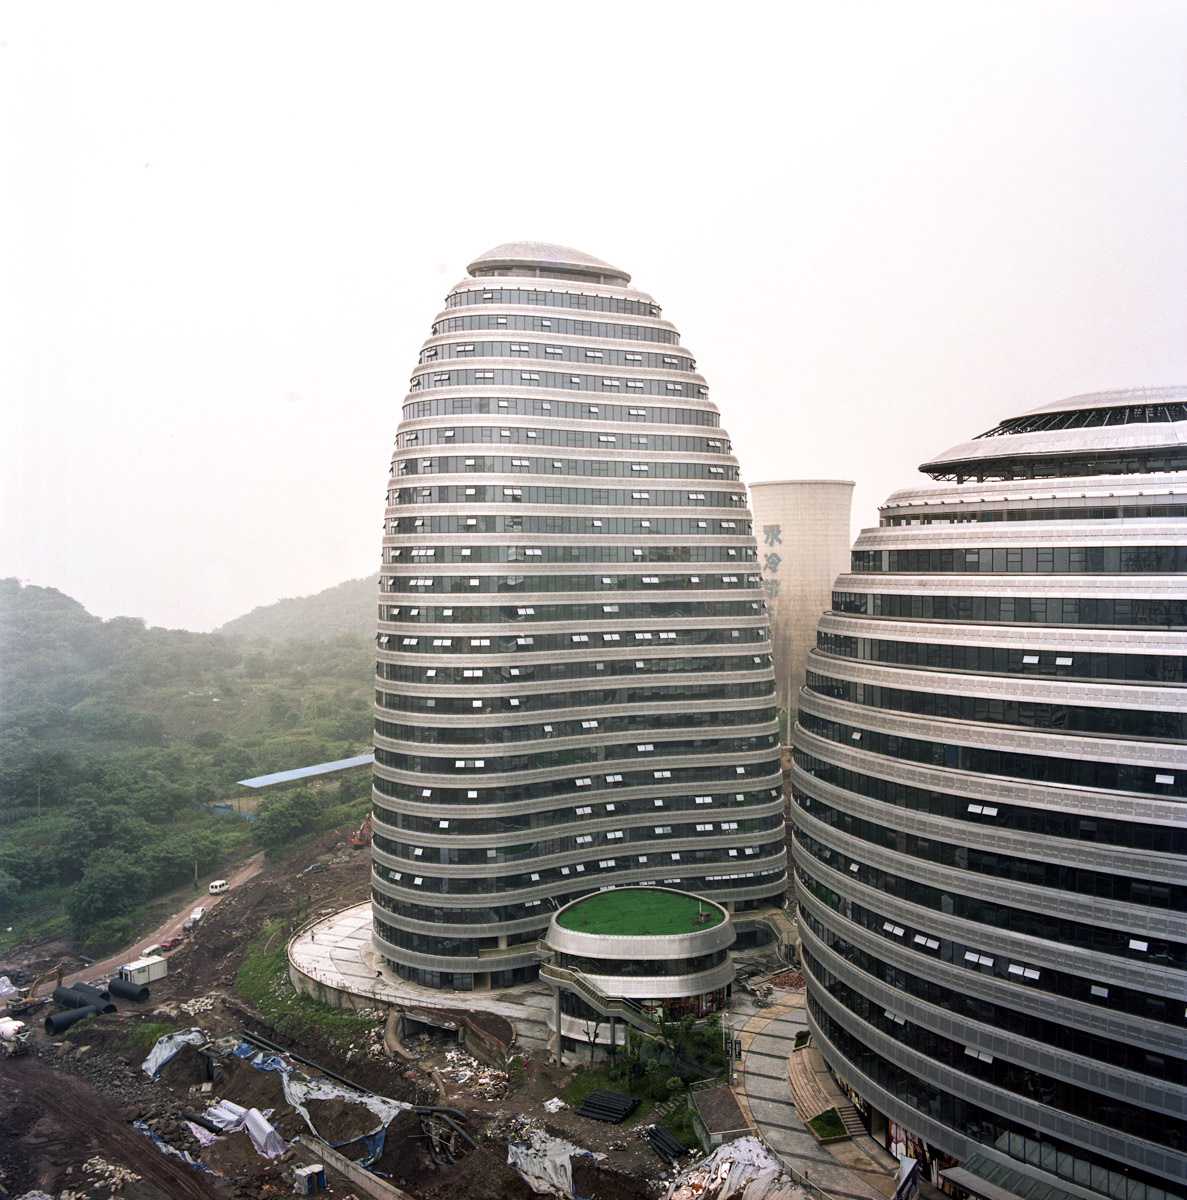 The copycat building is located in the Jiangbei district of Chongqing